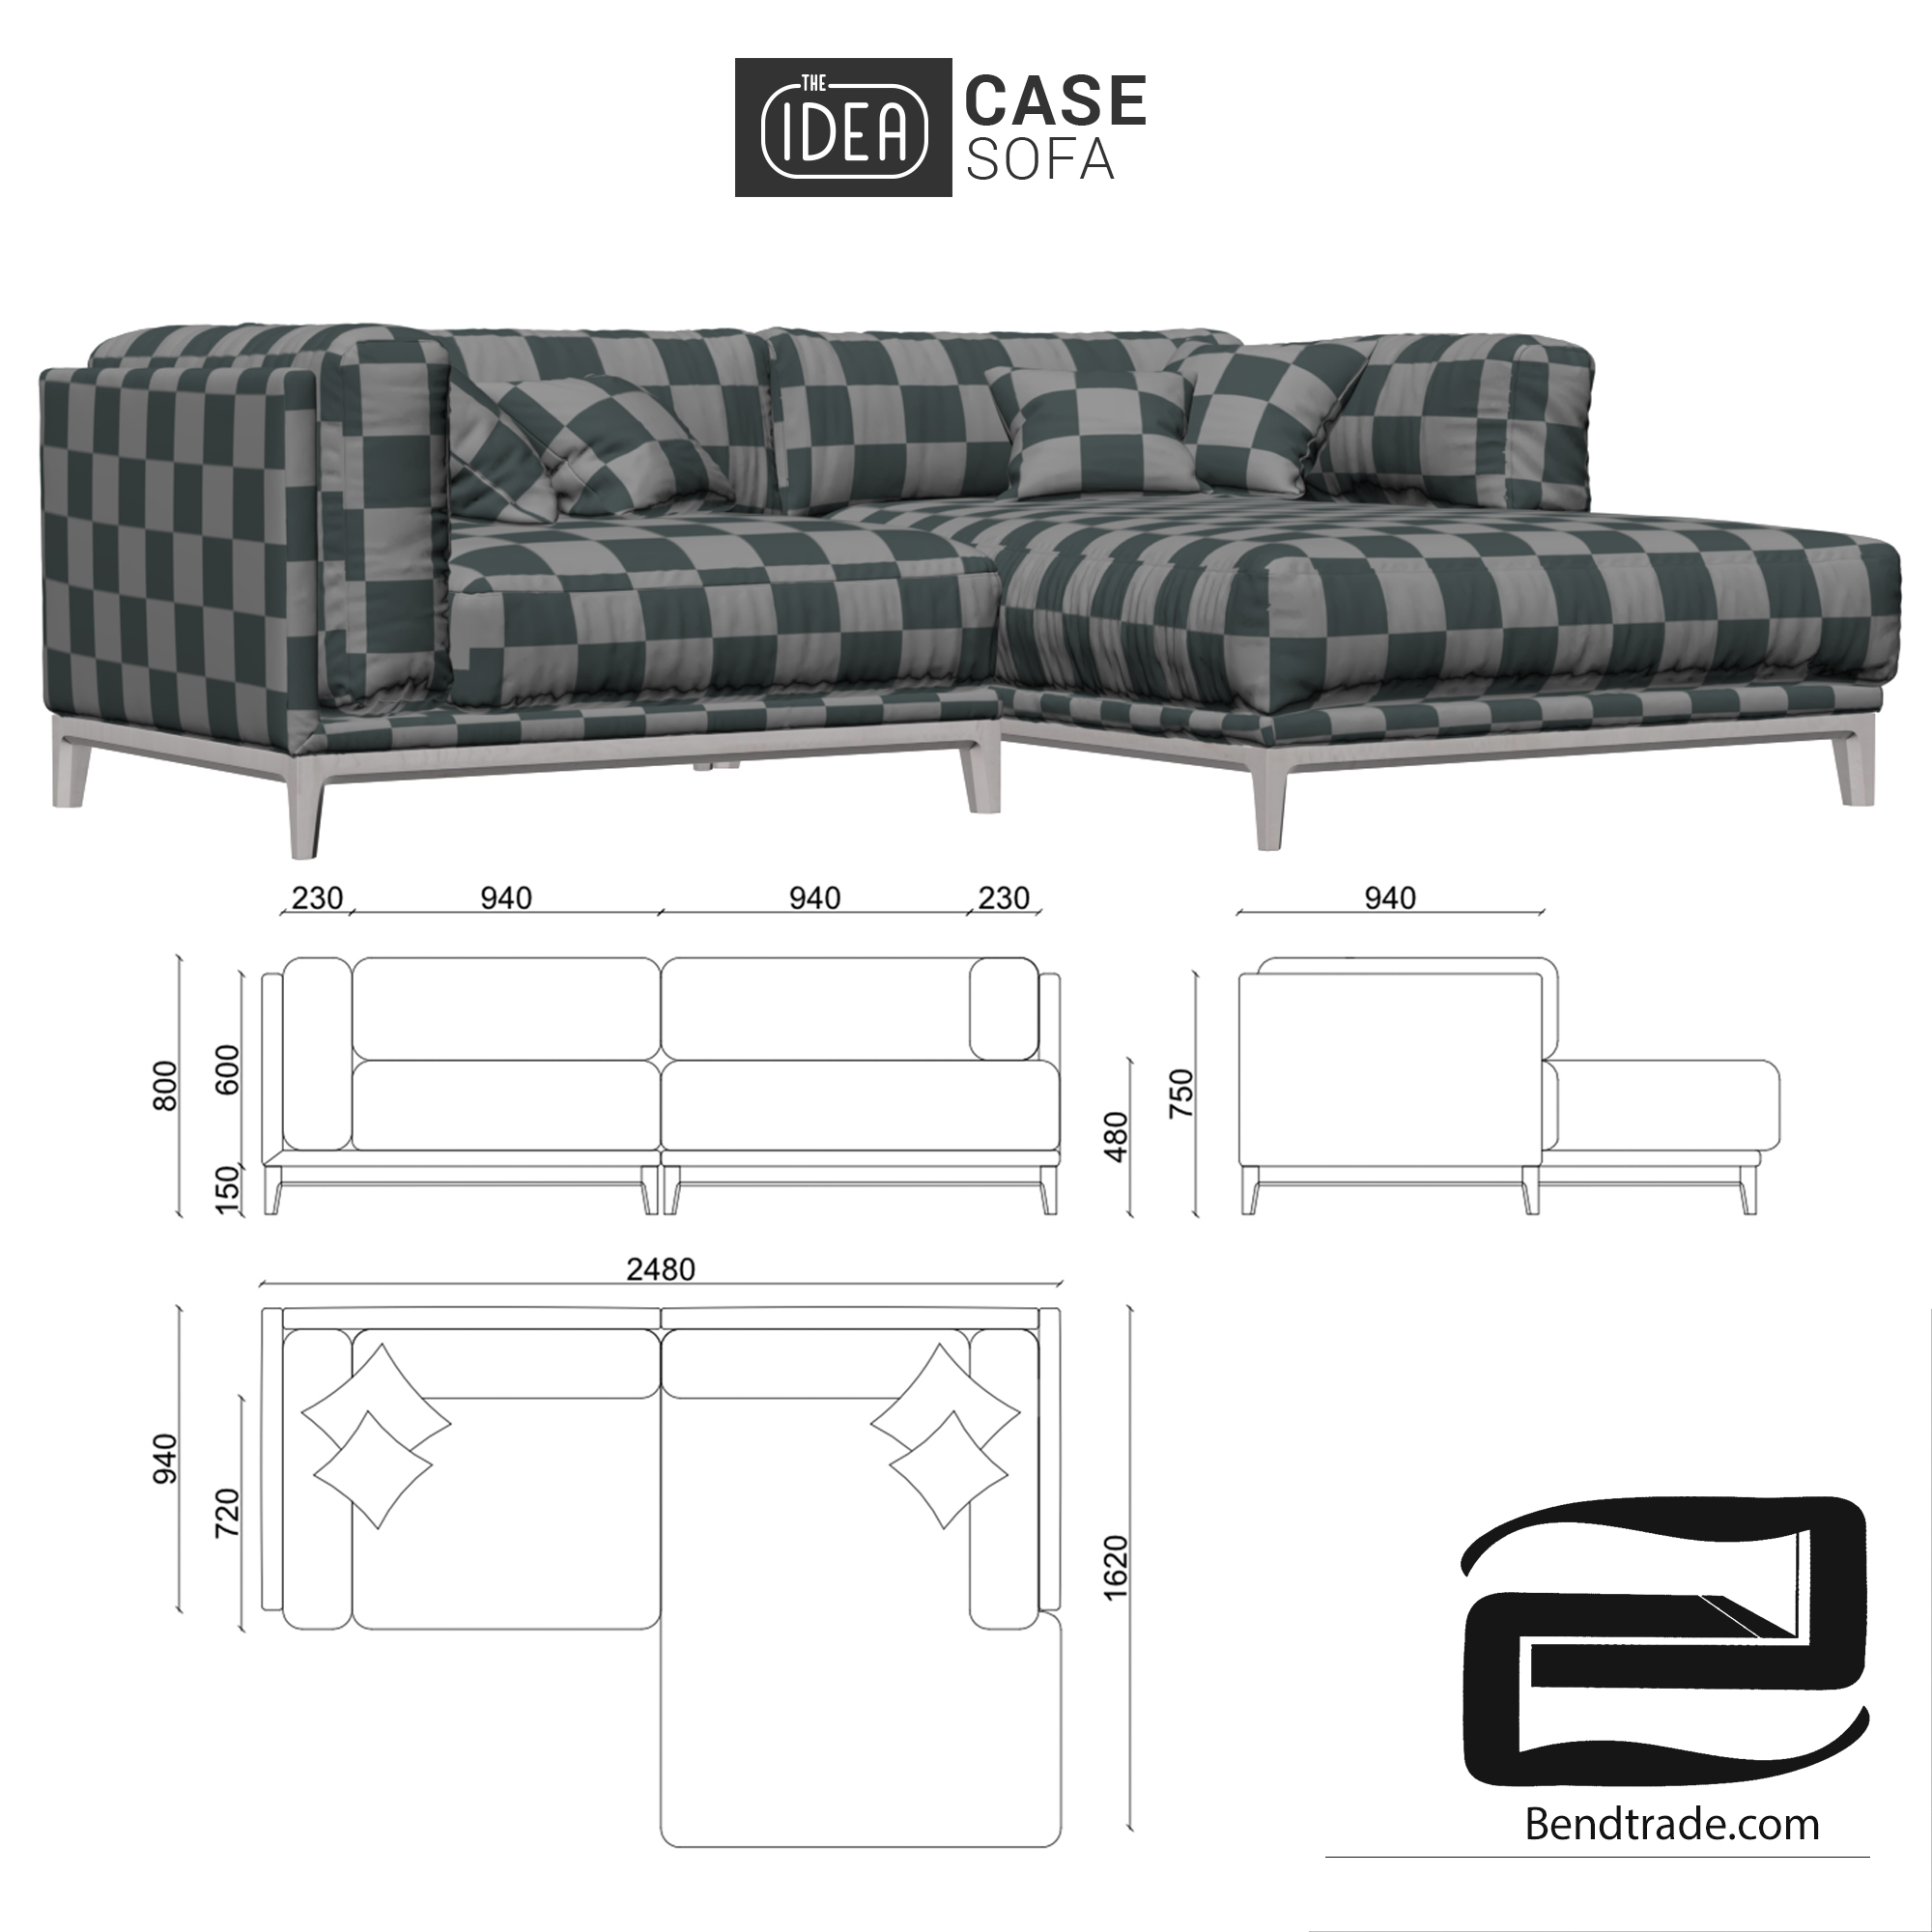 The IDEA of a Modular Sofa CASE (art 901-908)